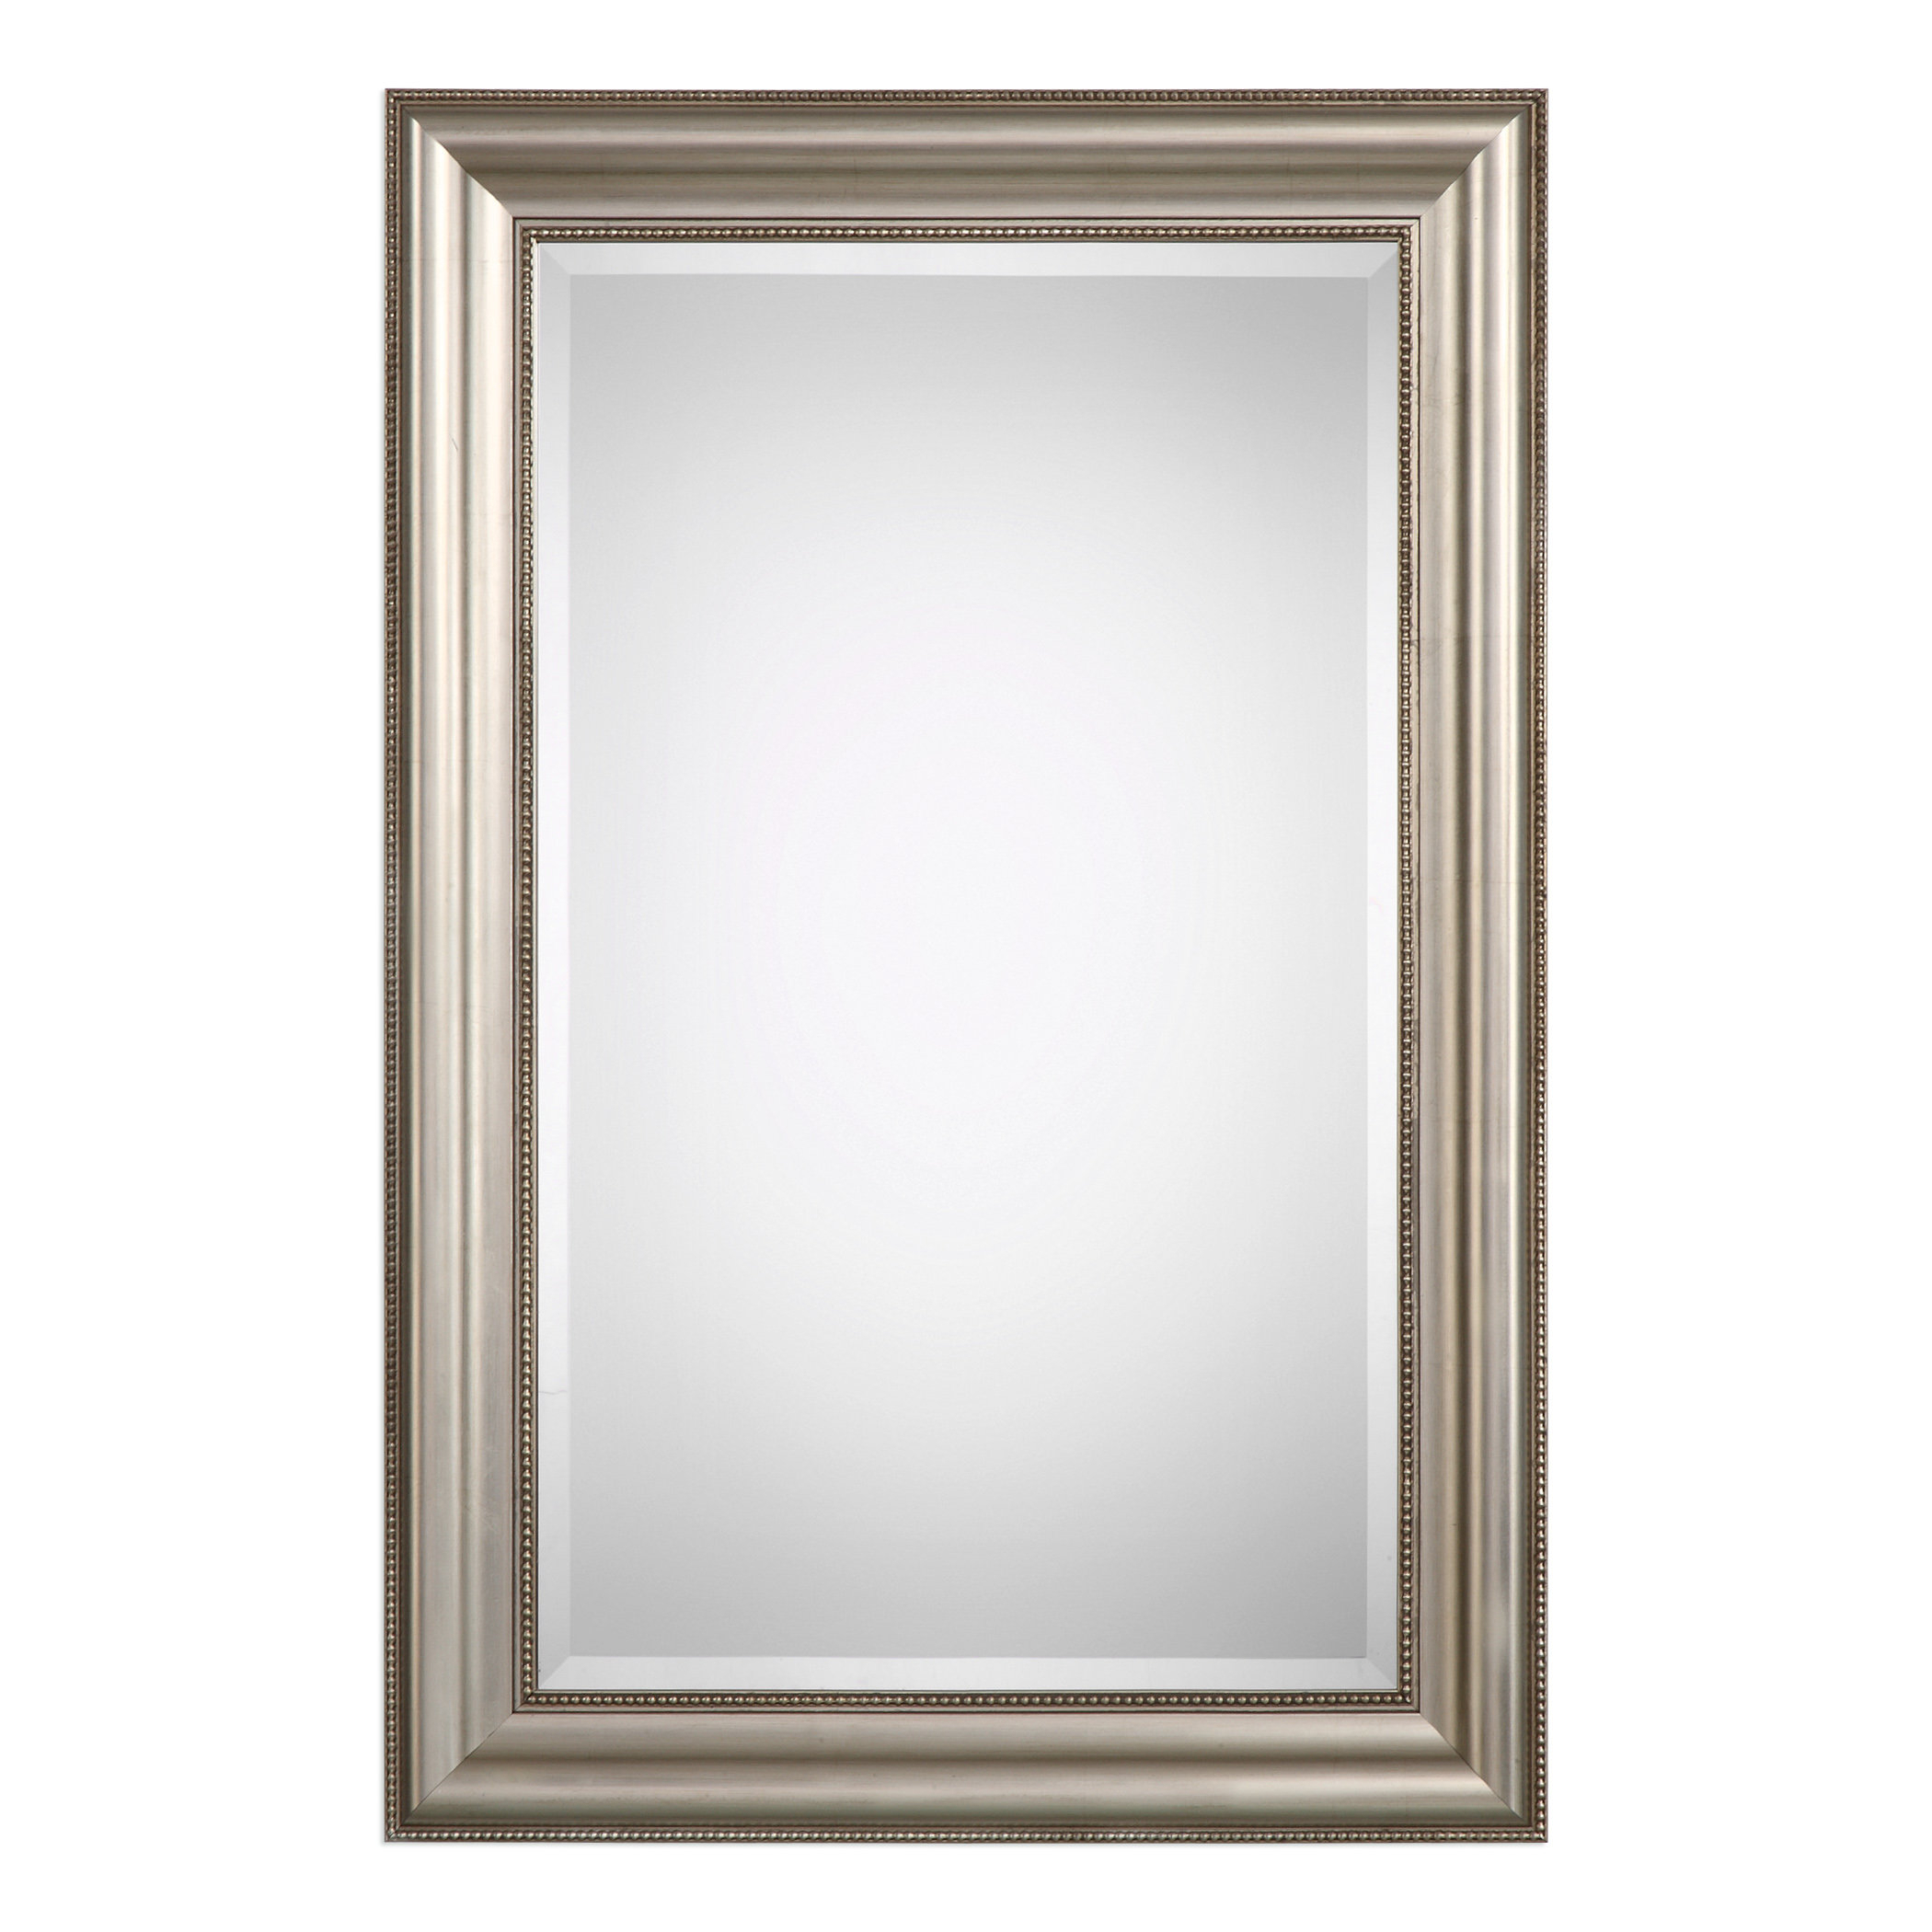 Farmhouse Mirrors | Birch Lane For Beaded Accent Wall Mirrors (View 9 of 30)